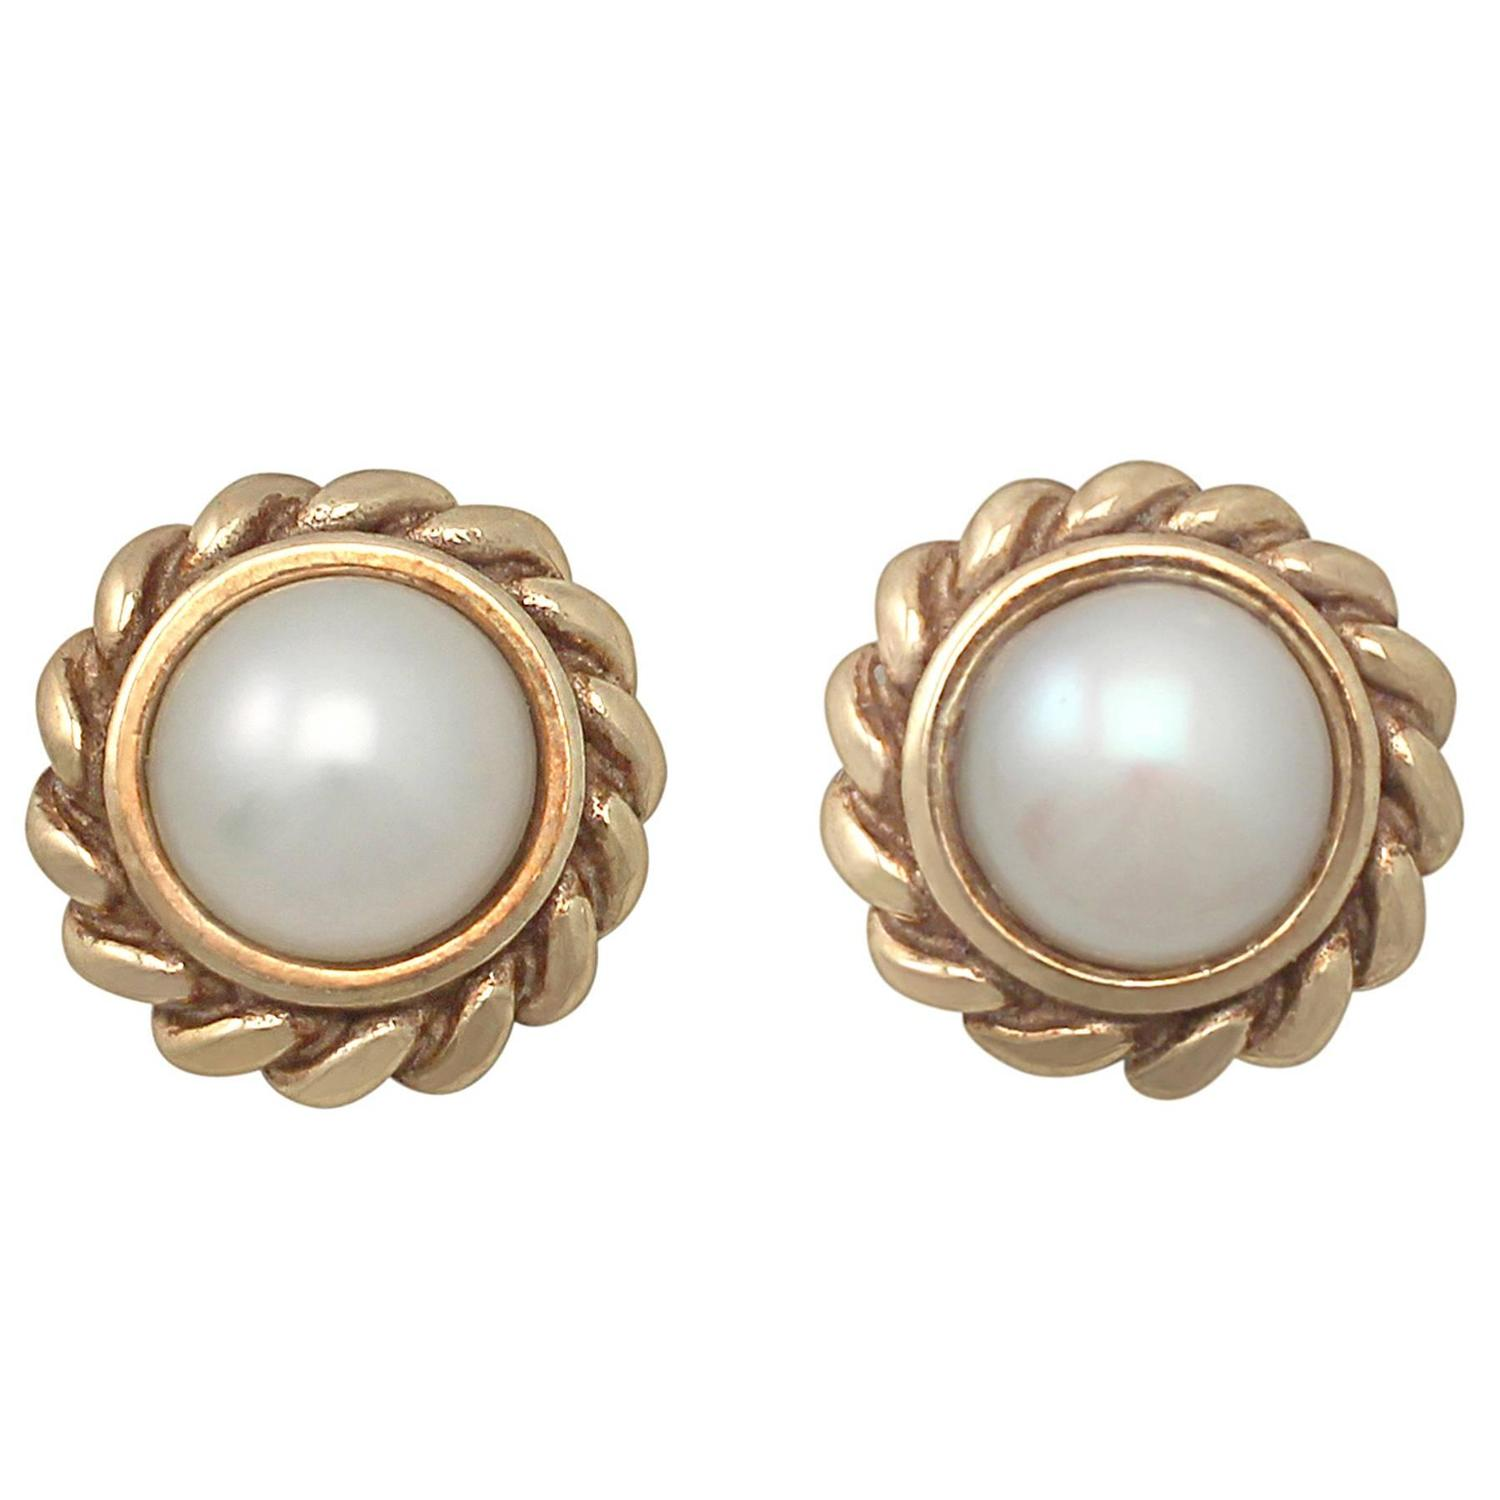 Pearl and 9k Yellow Gold Stud Earrings Vintage Circa 1990 at 1stdibs